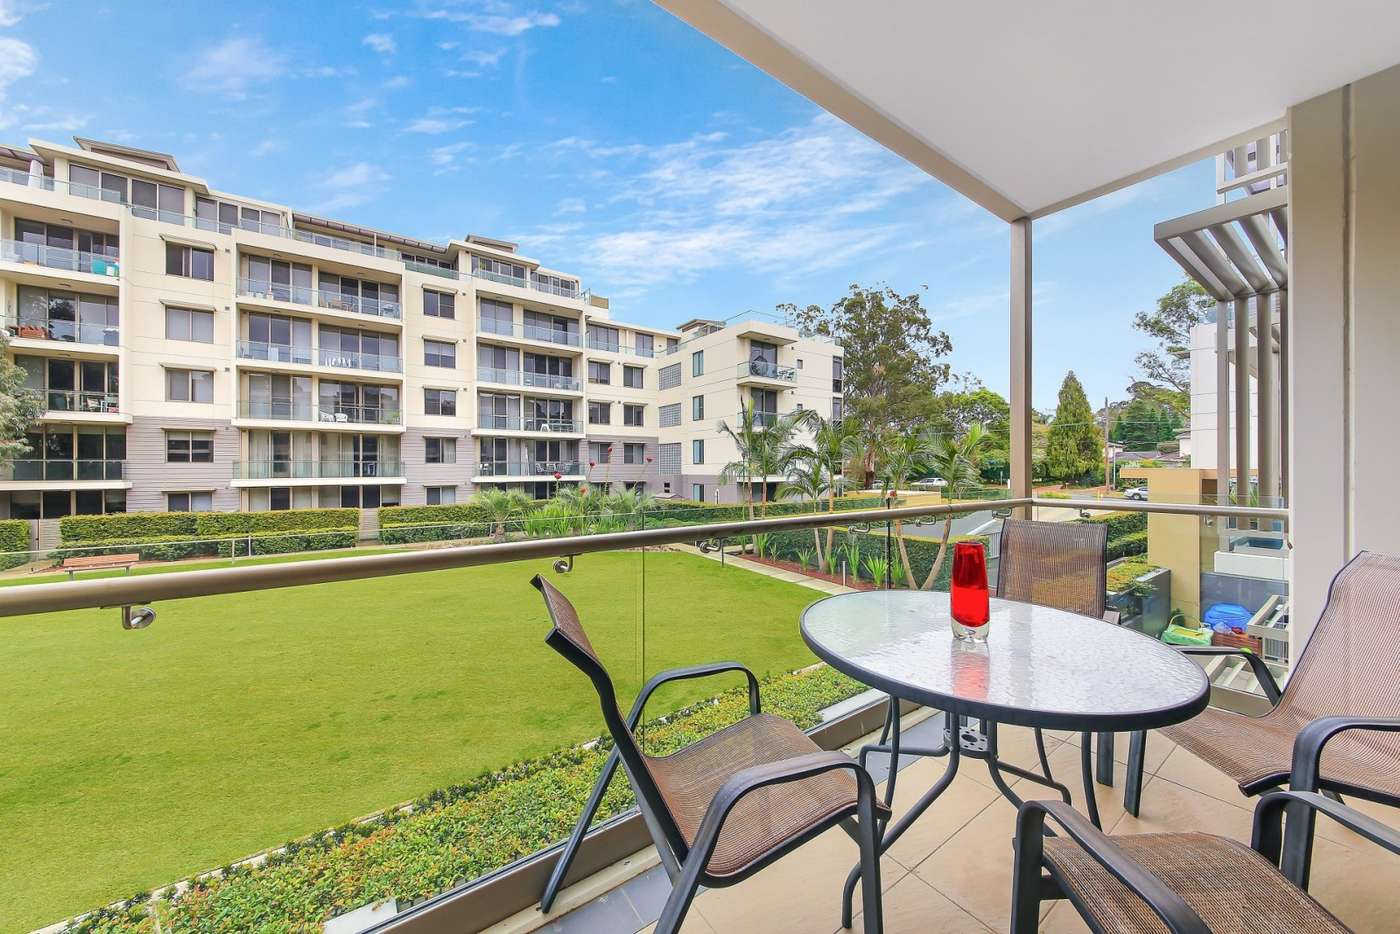 Main view of Homely apartment listing, 176/132-138 Killeaton Street, St Ives NSW 2075